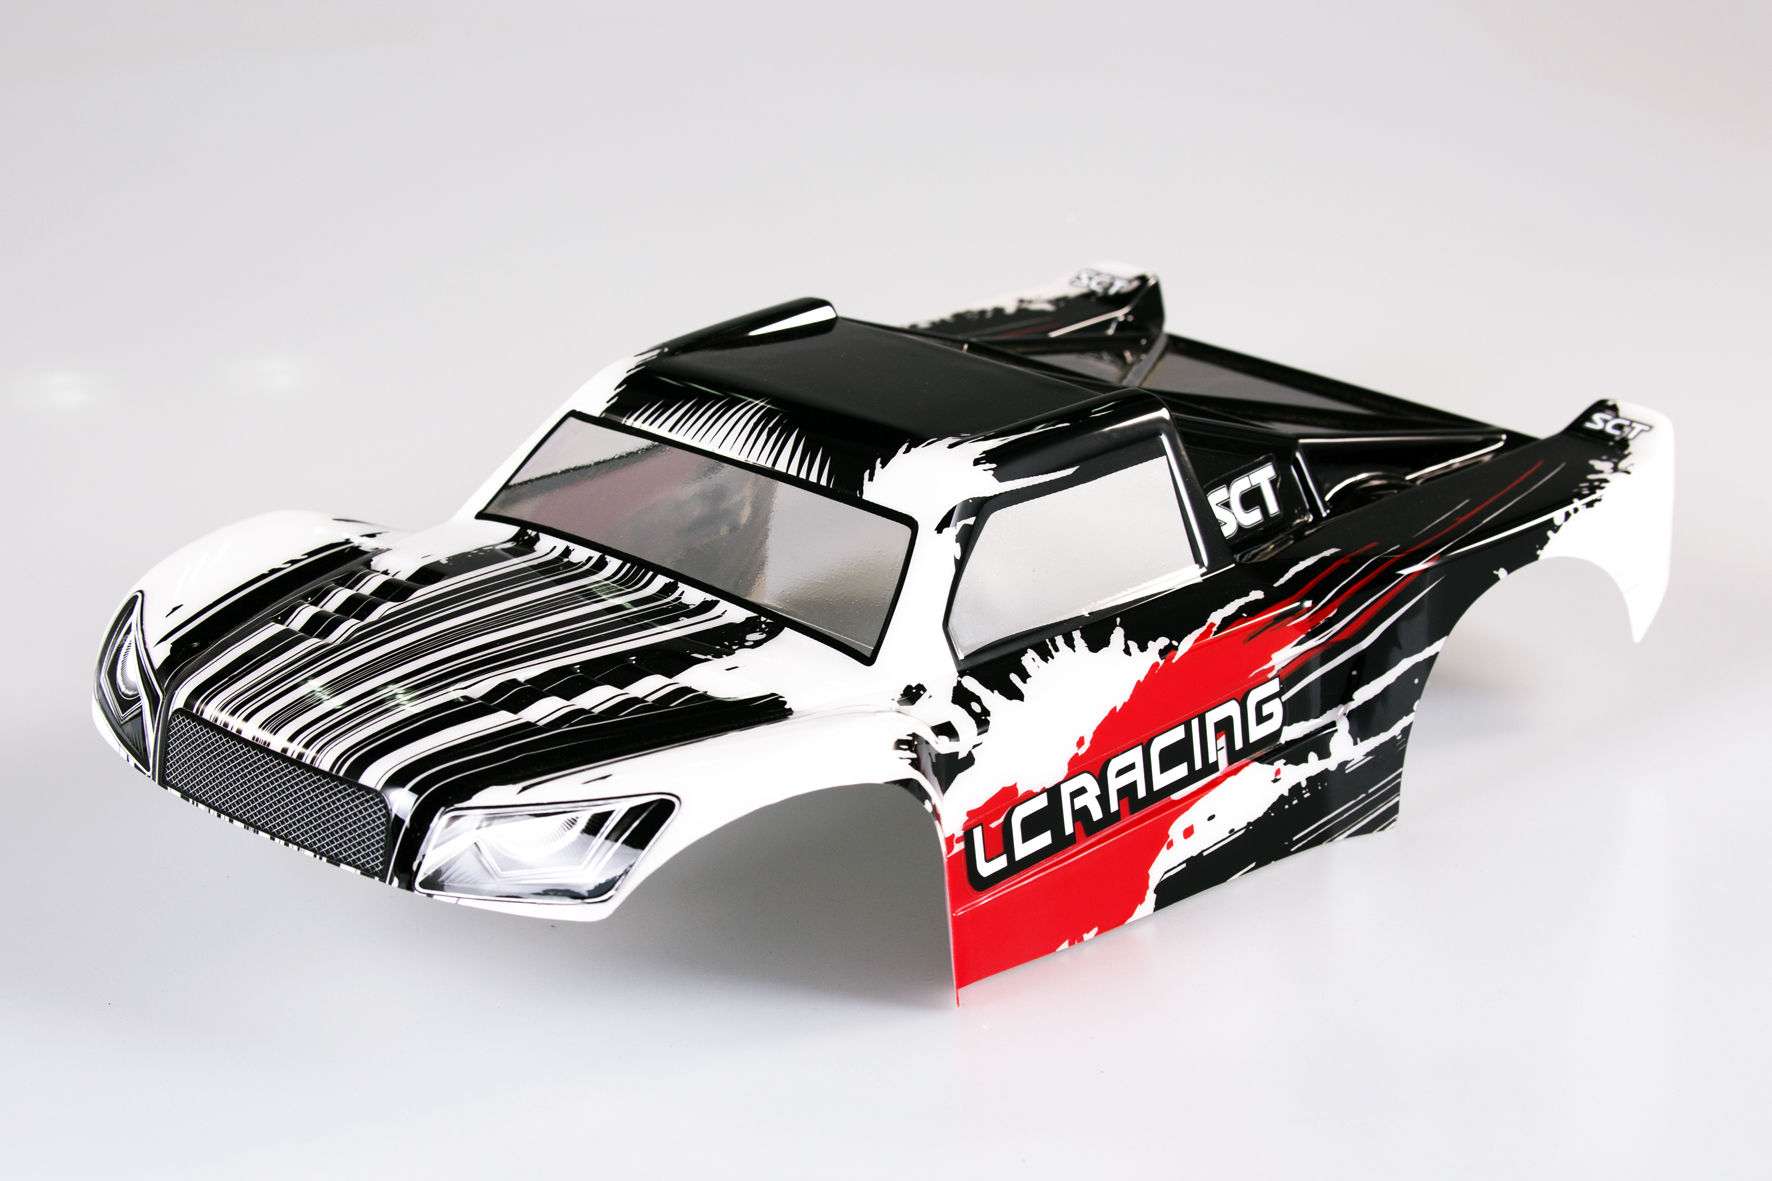 Neue LC Racing RC Car Bo s ⋆ LCRacing RC Cars Tuning und